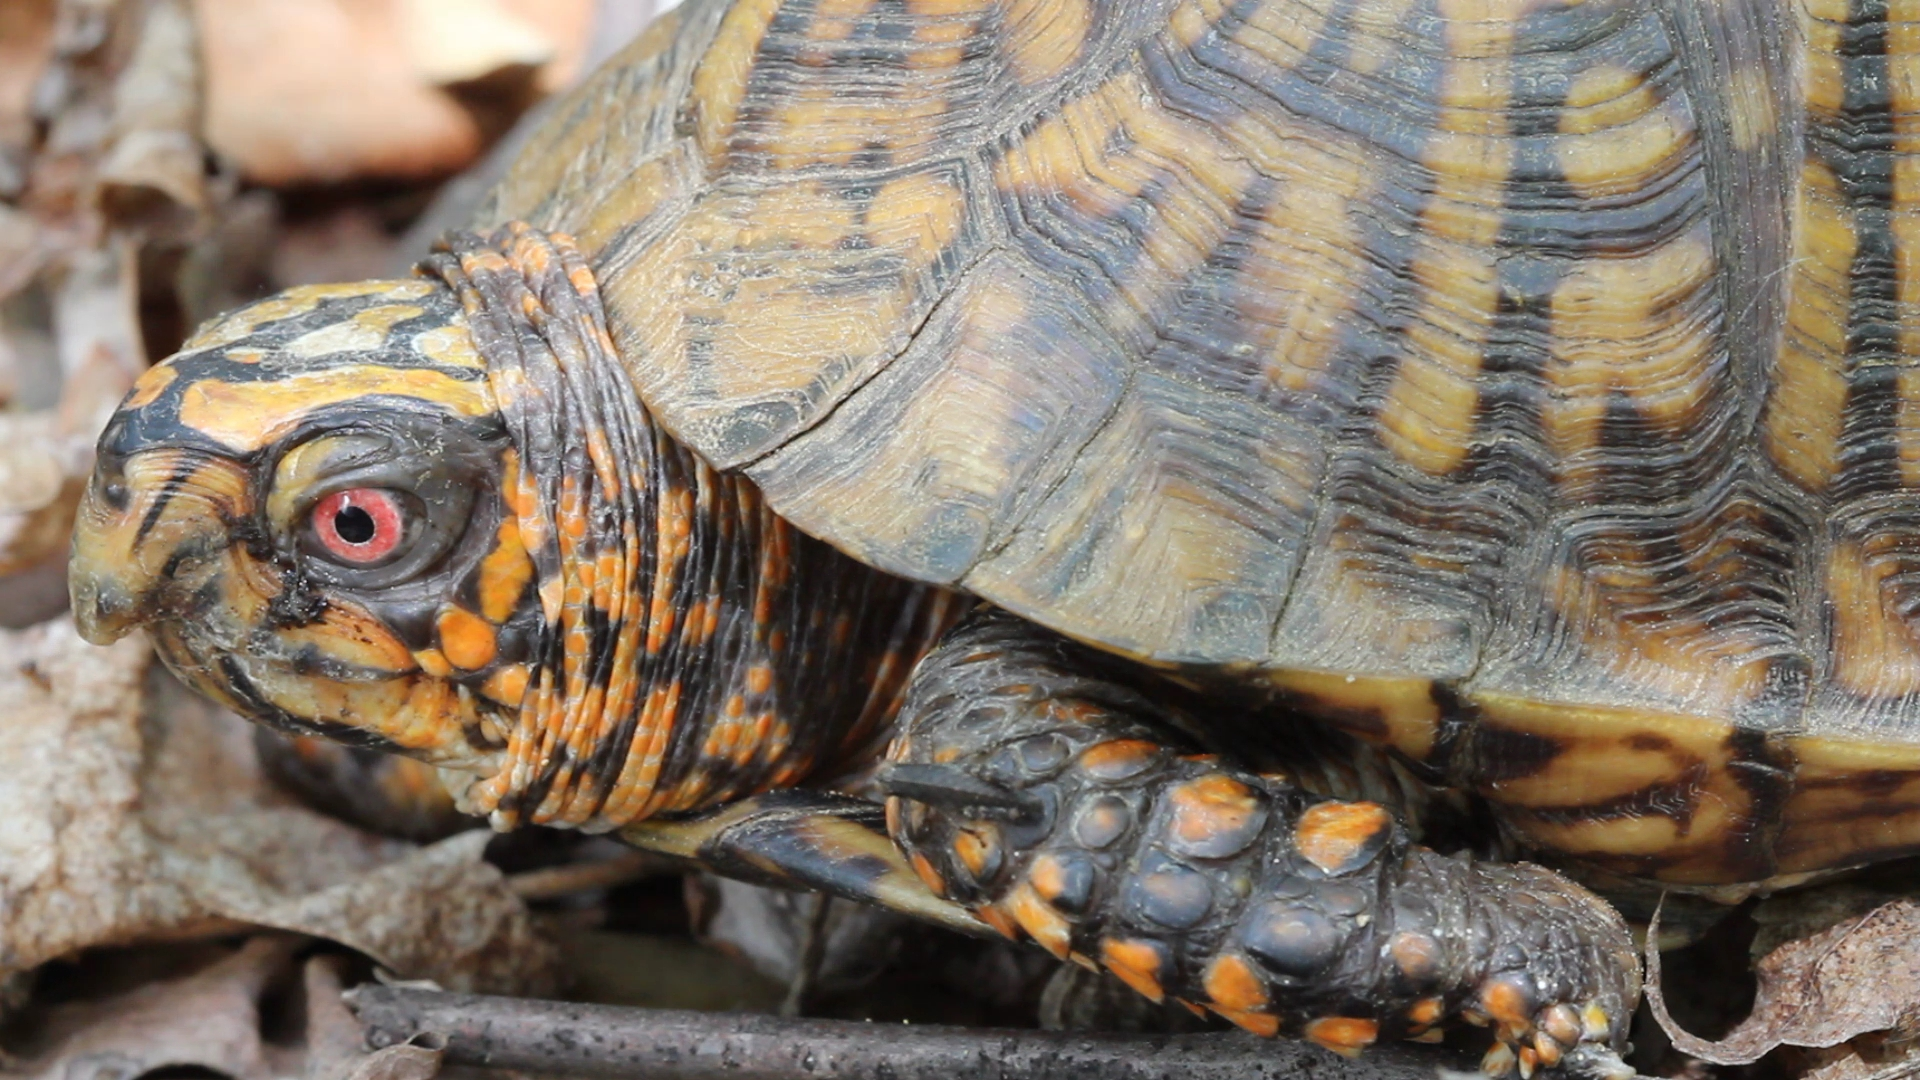 Box Turtle, right side, close-up.jpg